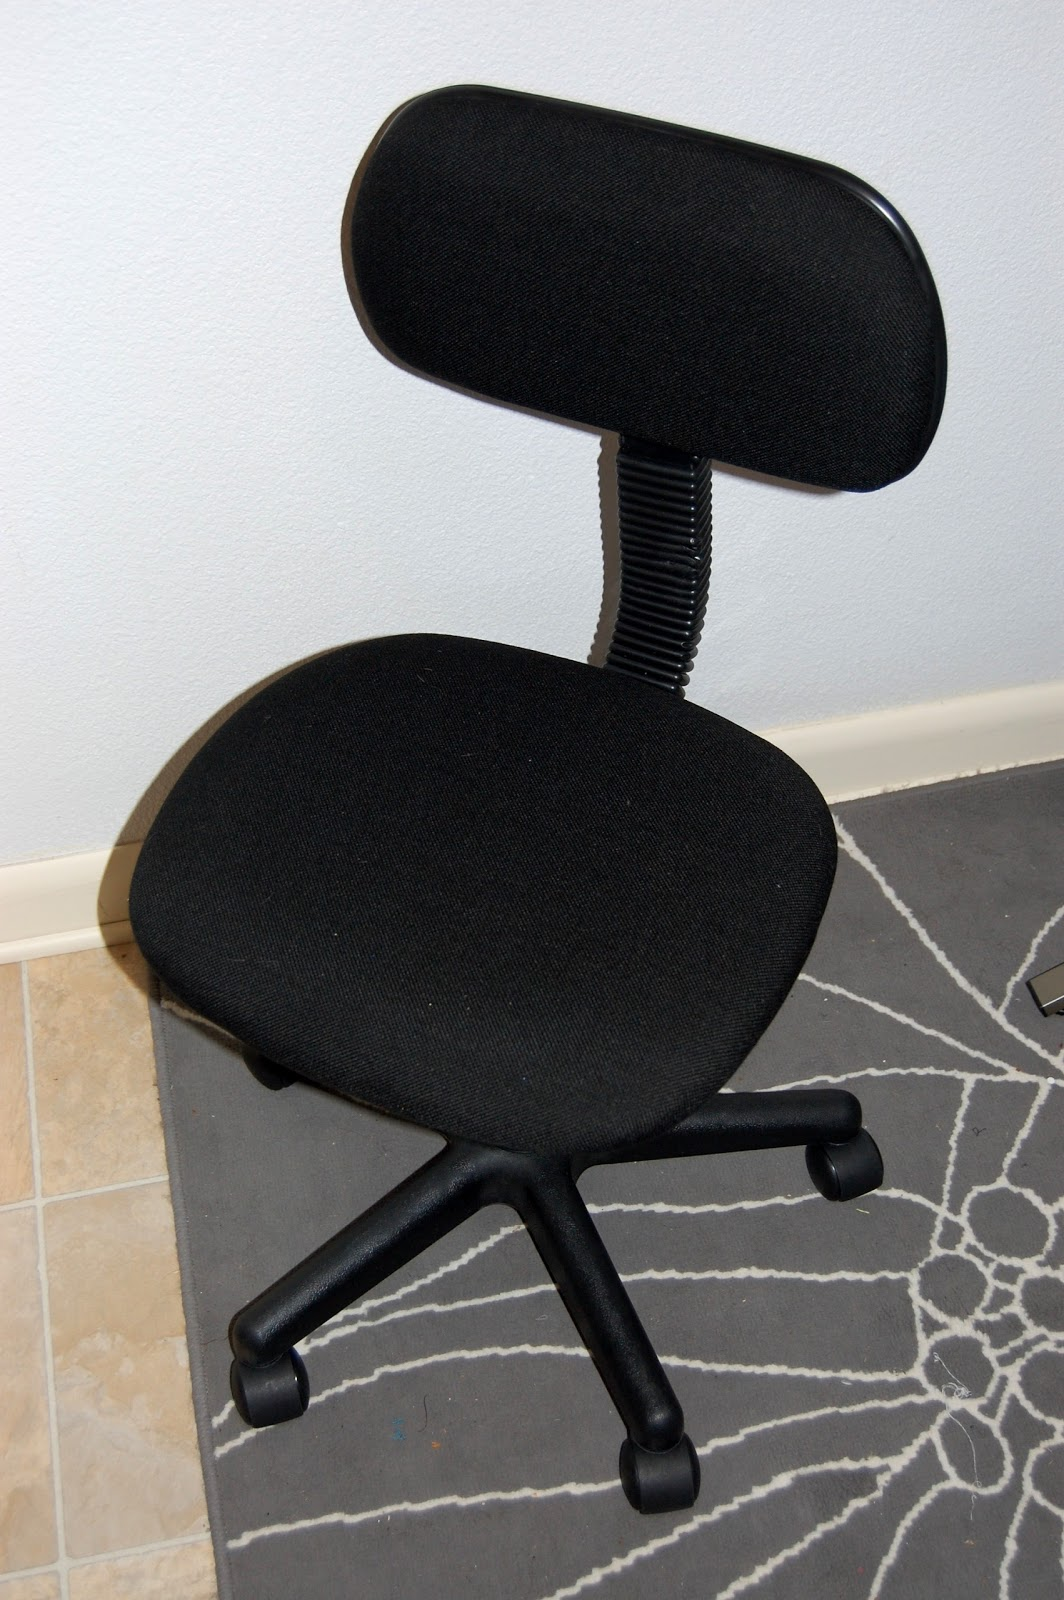 paint it pretty  Reupholster a boring office chair